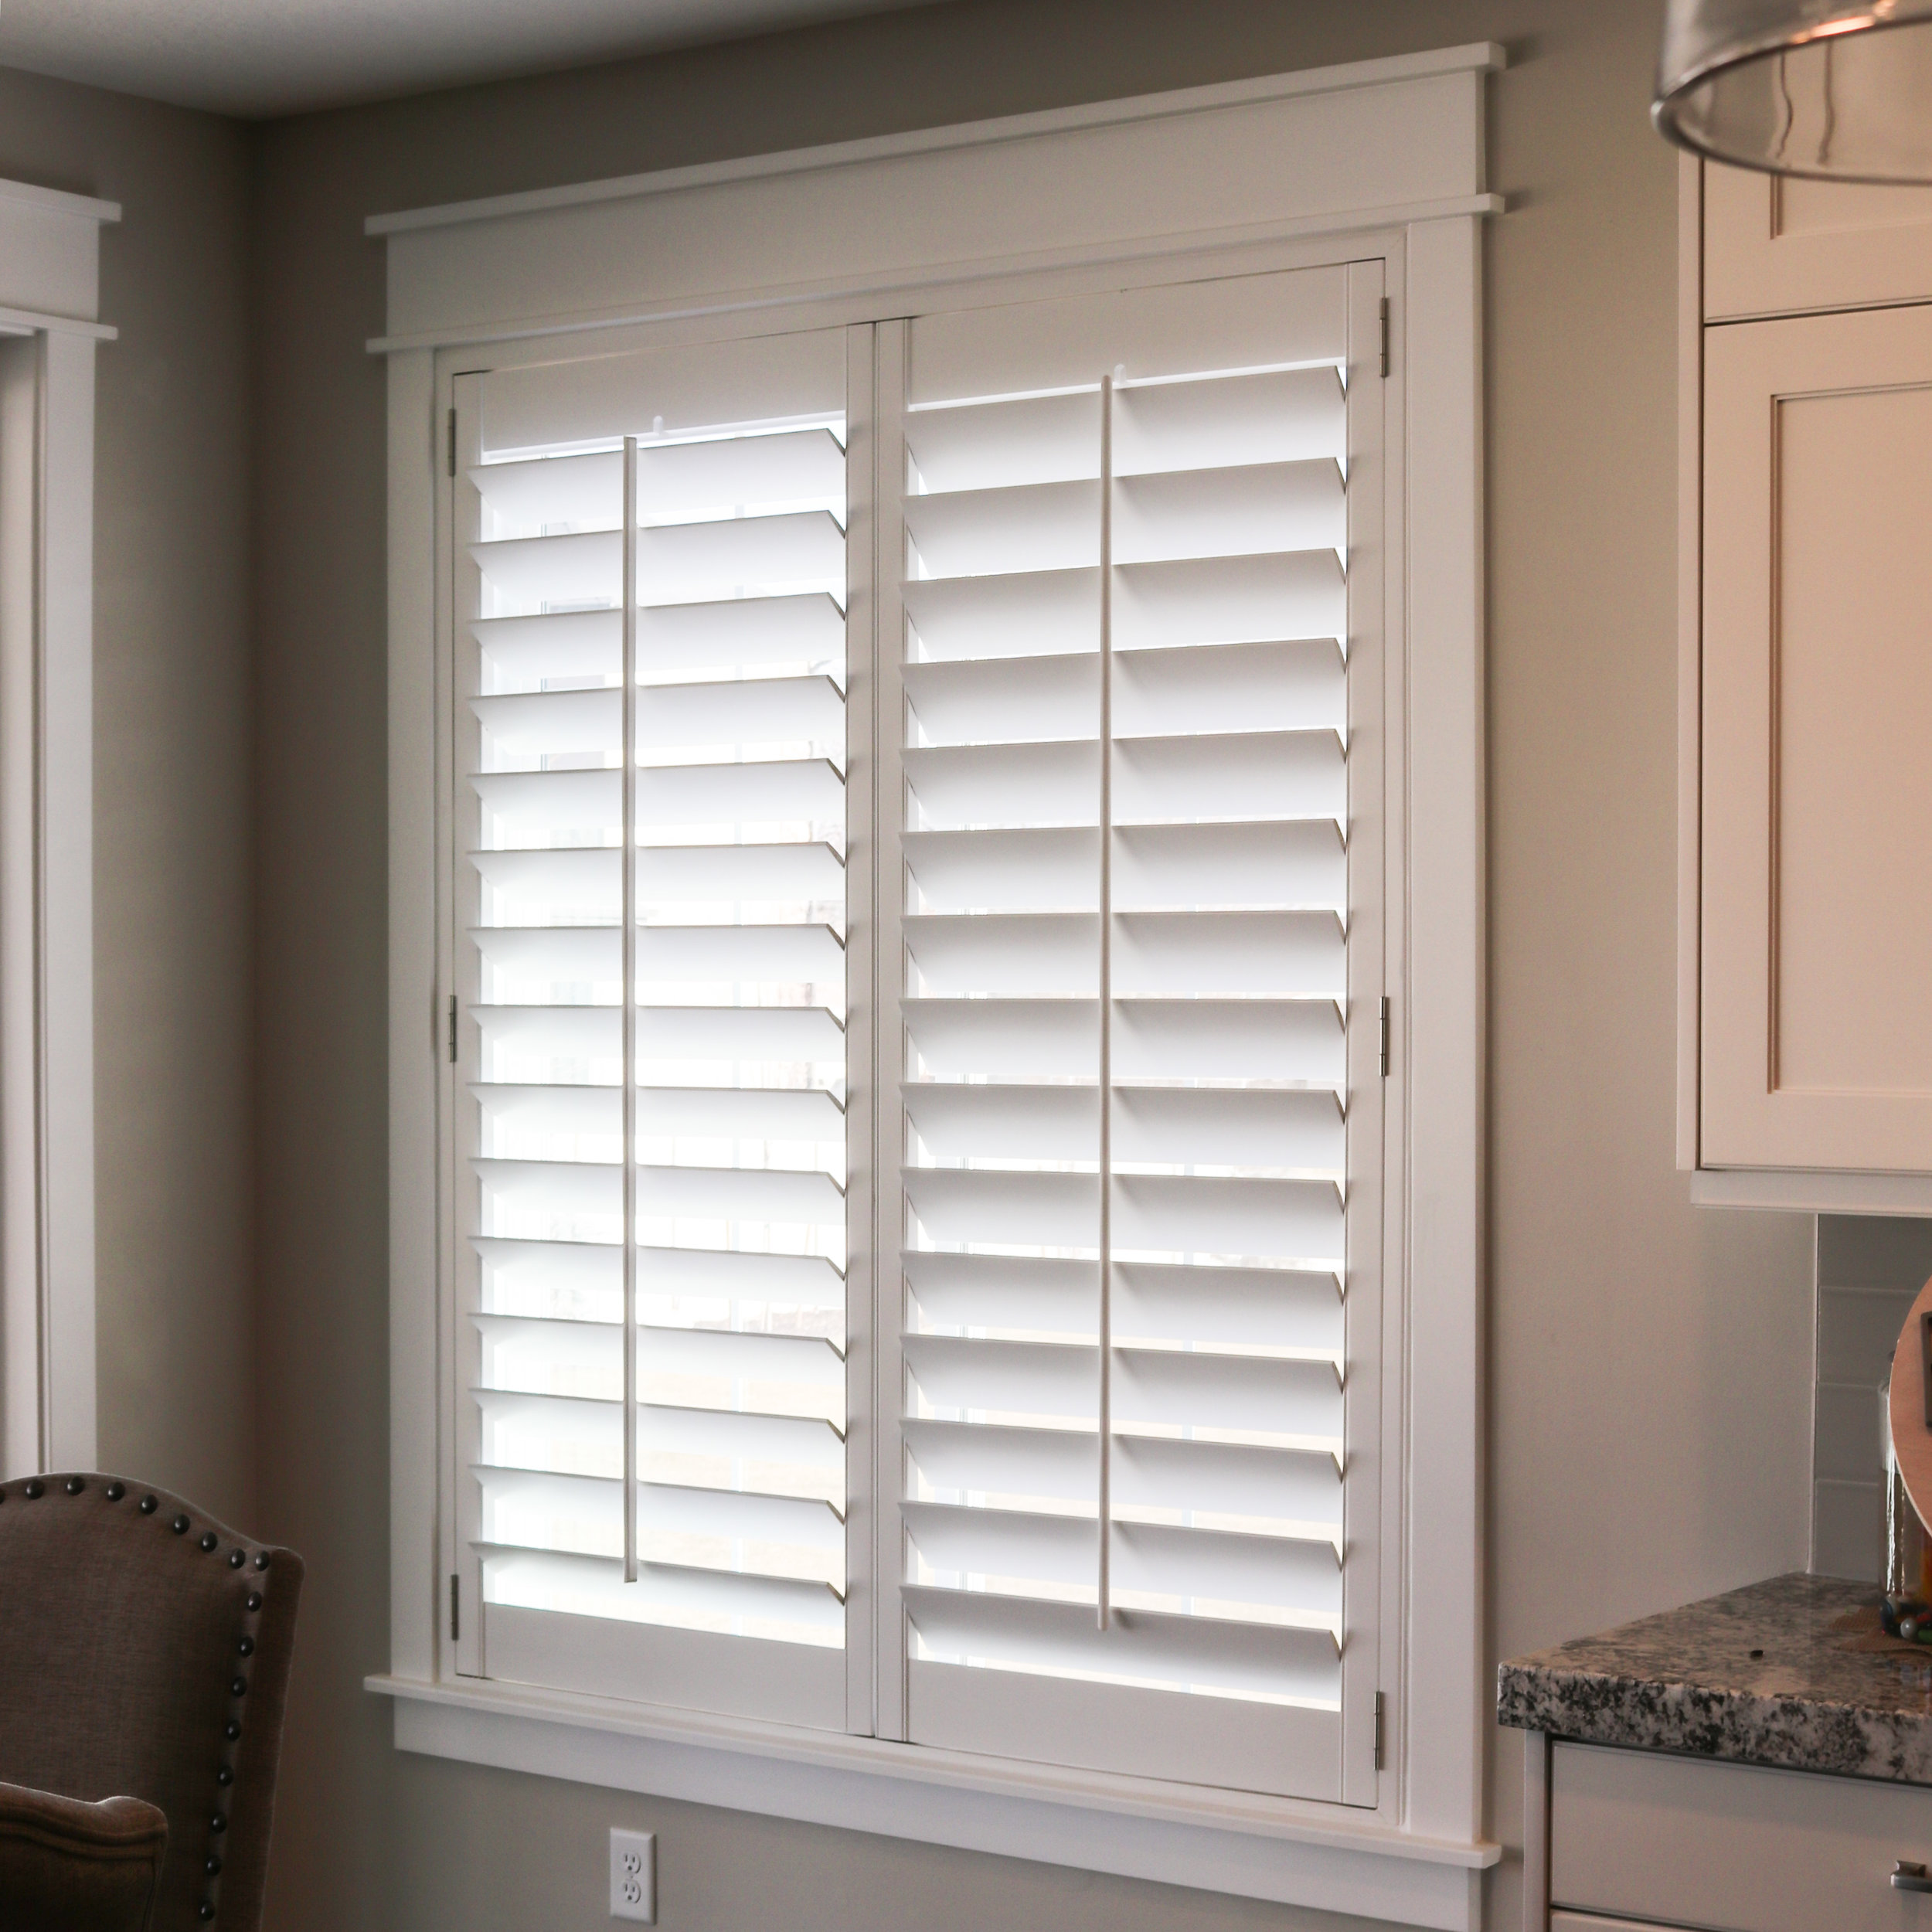 Modern cased window with small Z frame